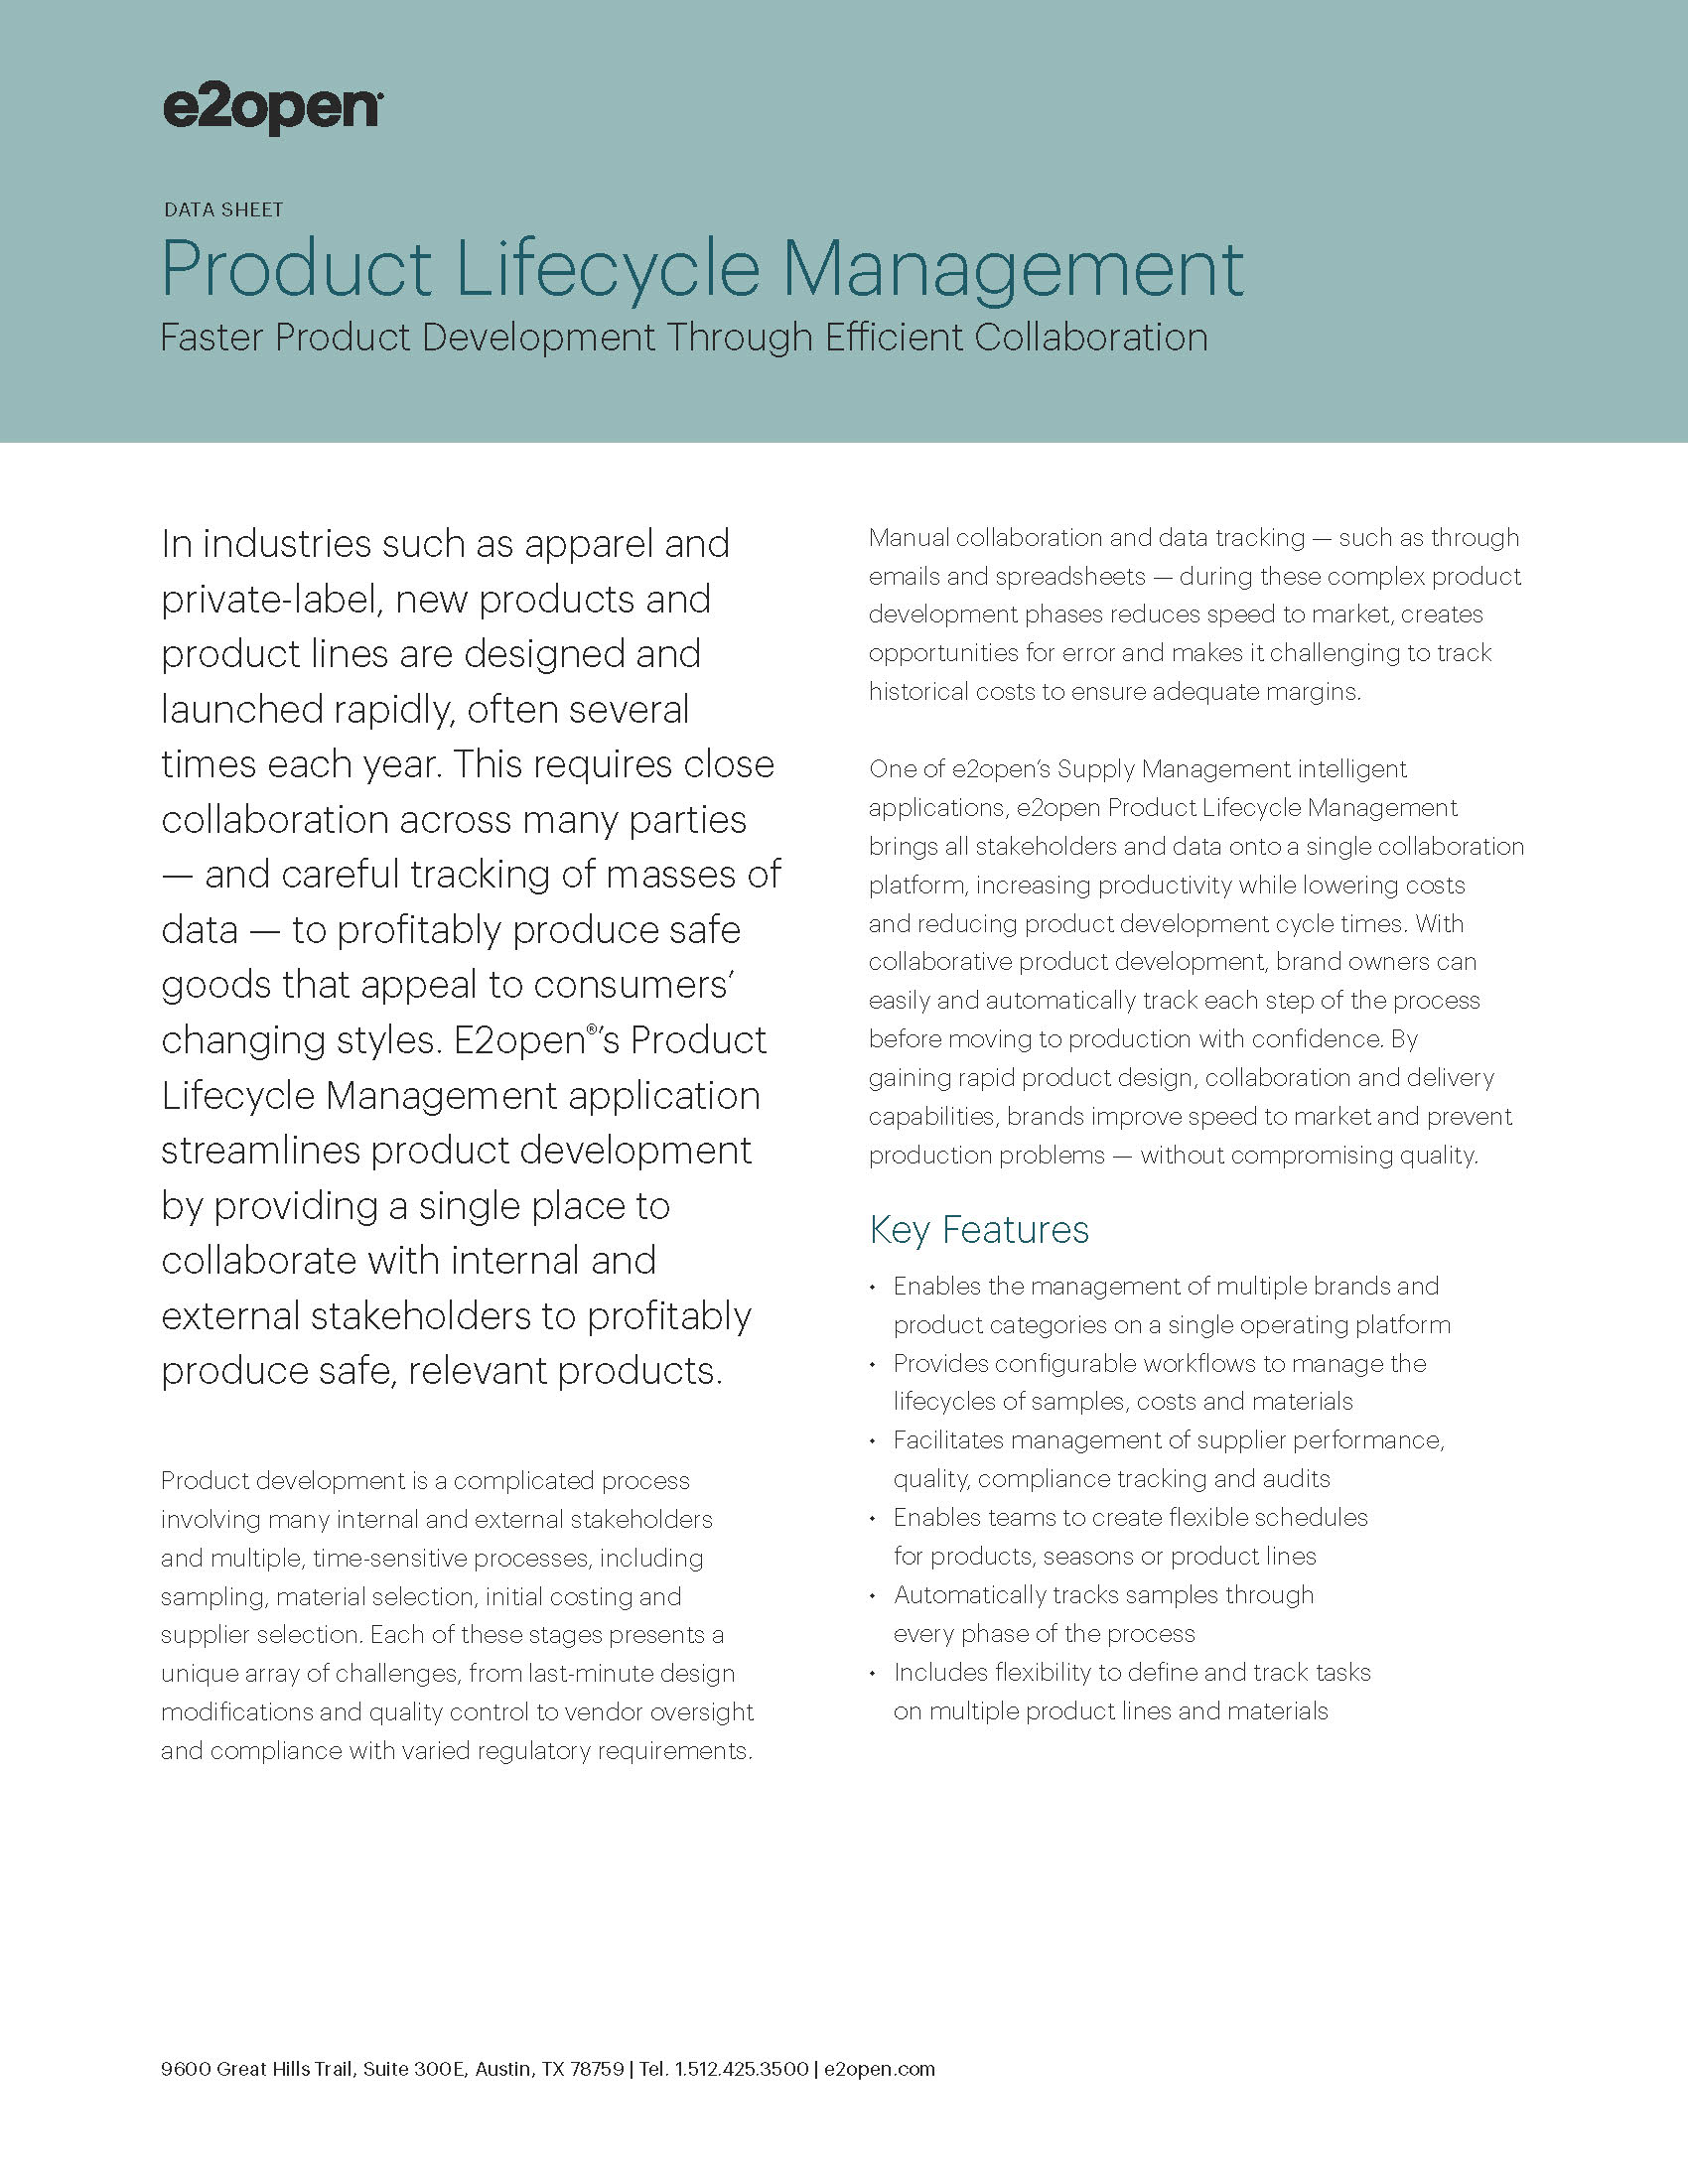 E2open Product Lifecycle Management